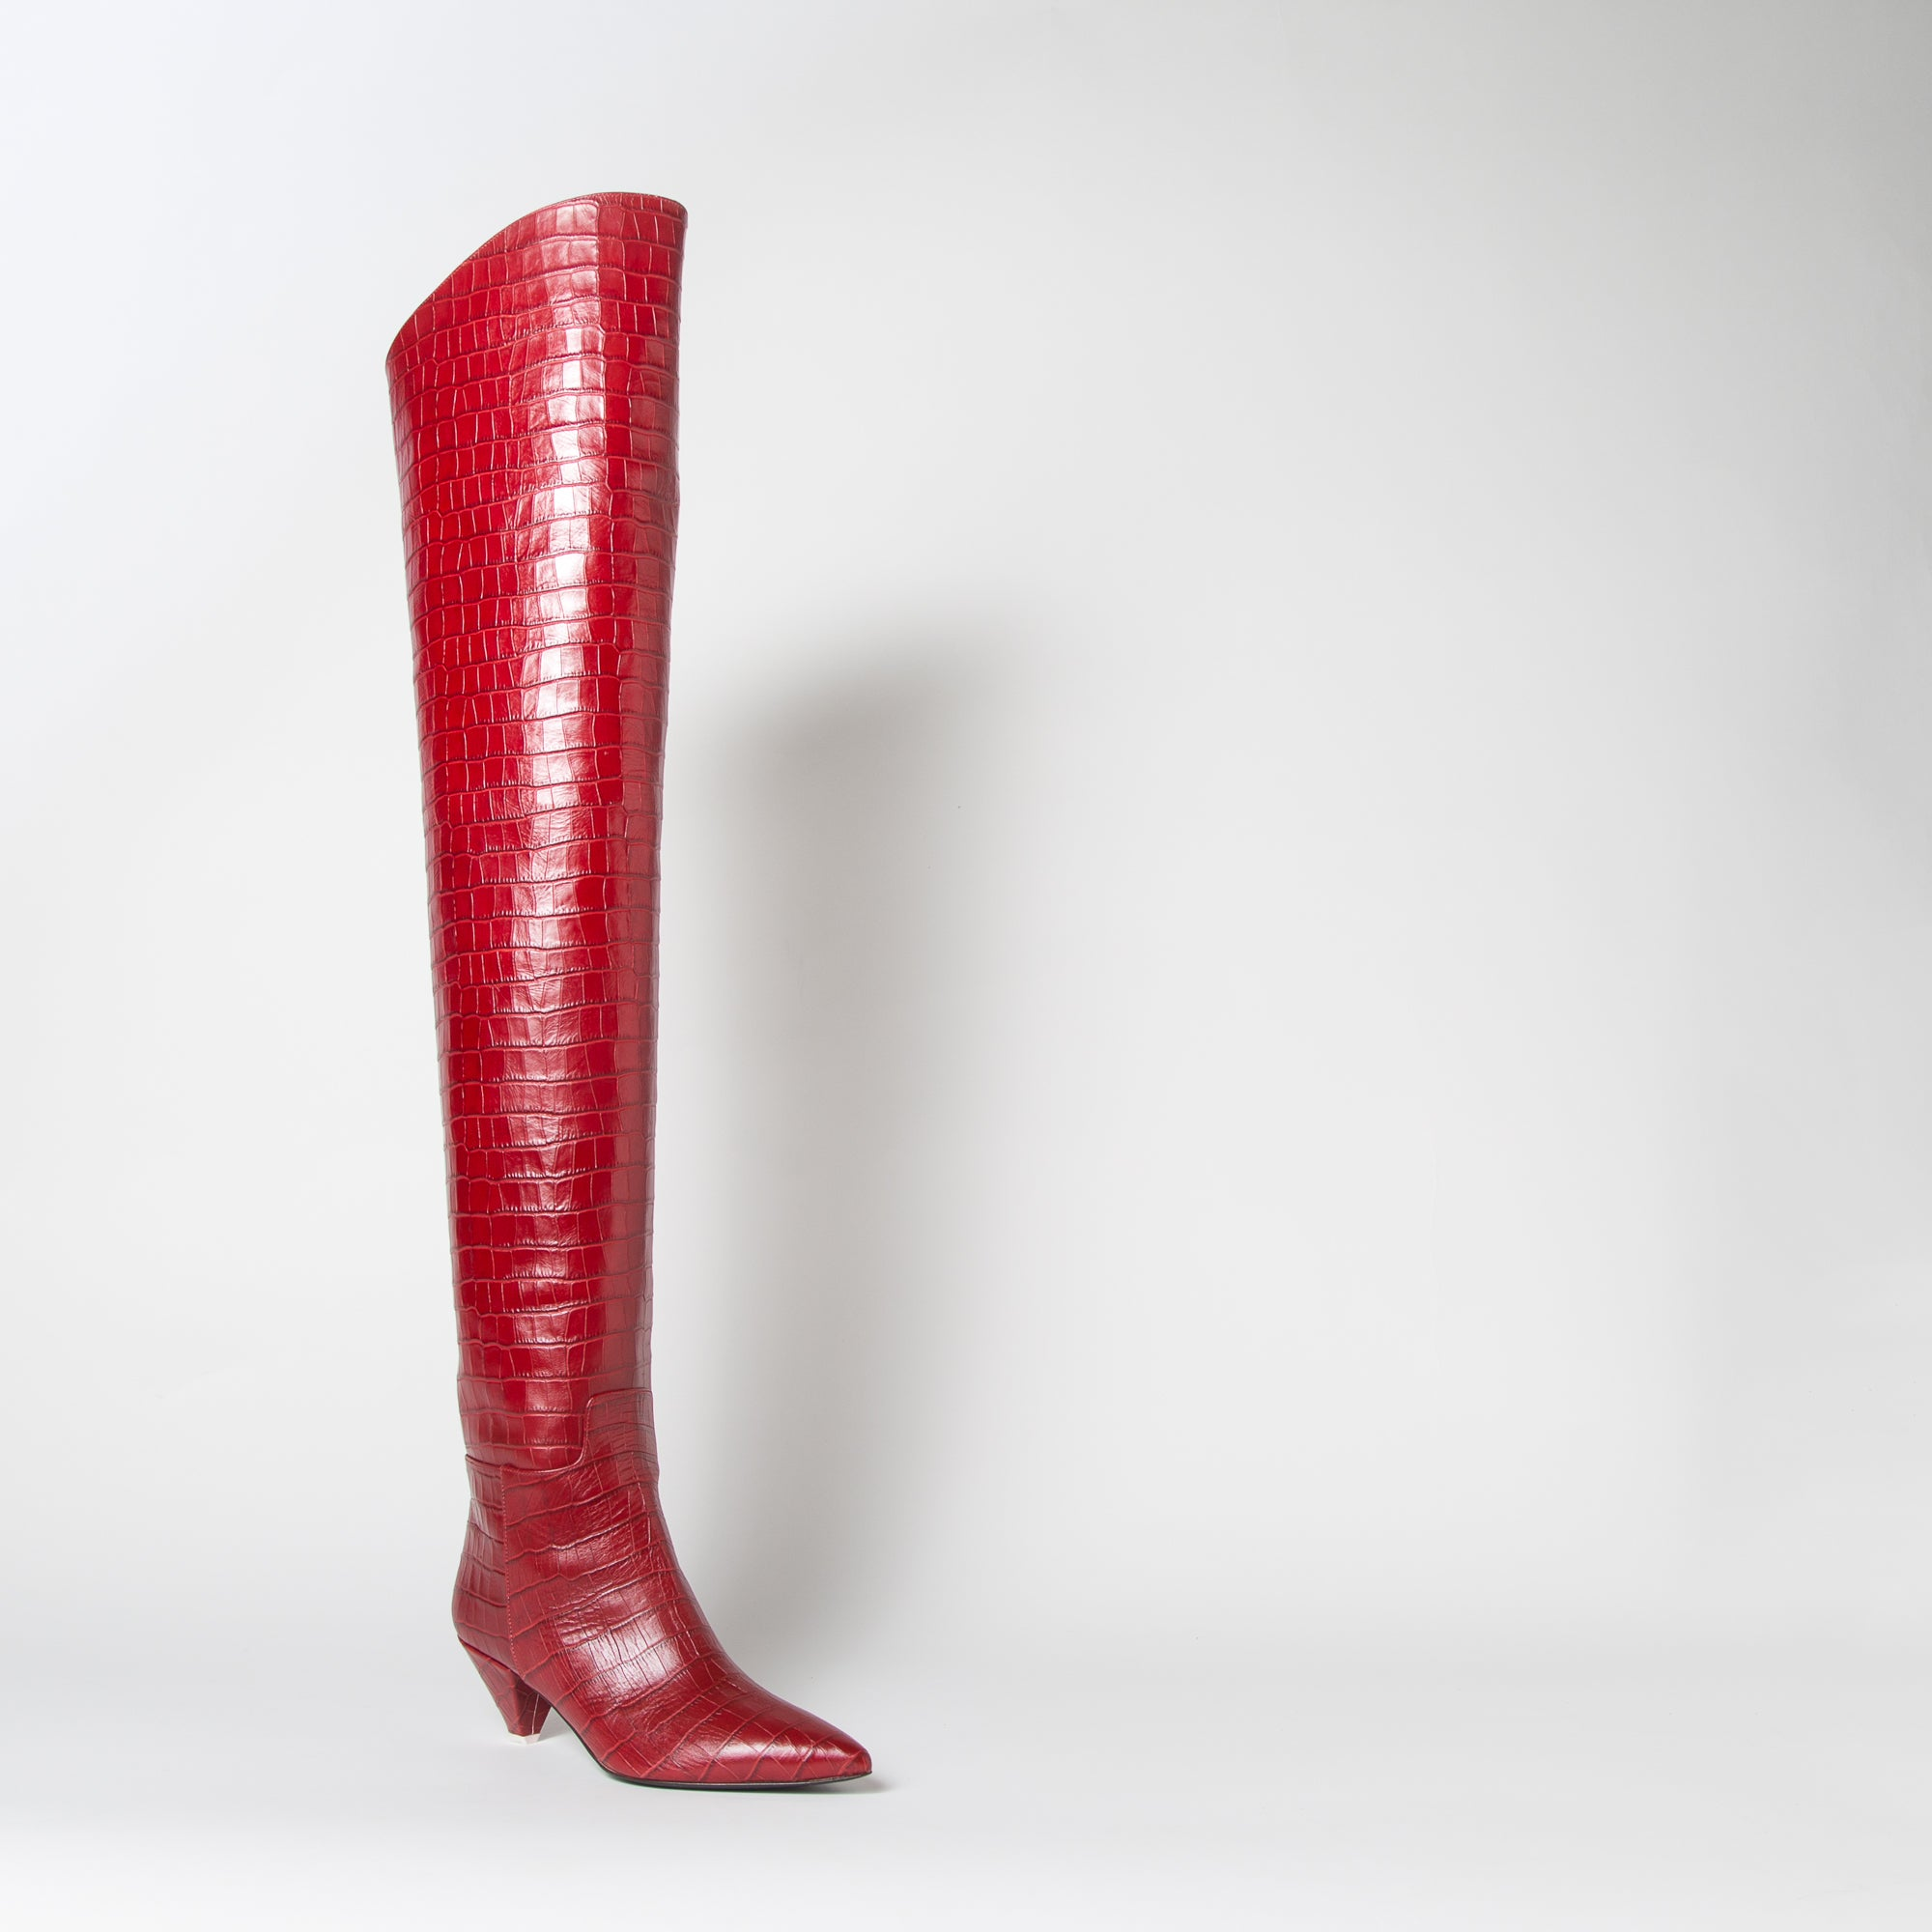 Asia Thigh-High, red croc